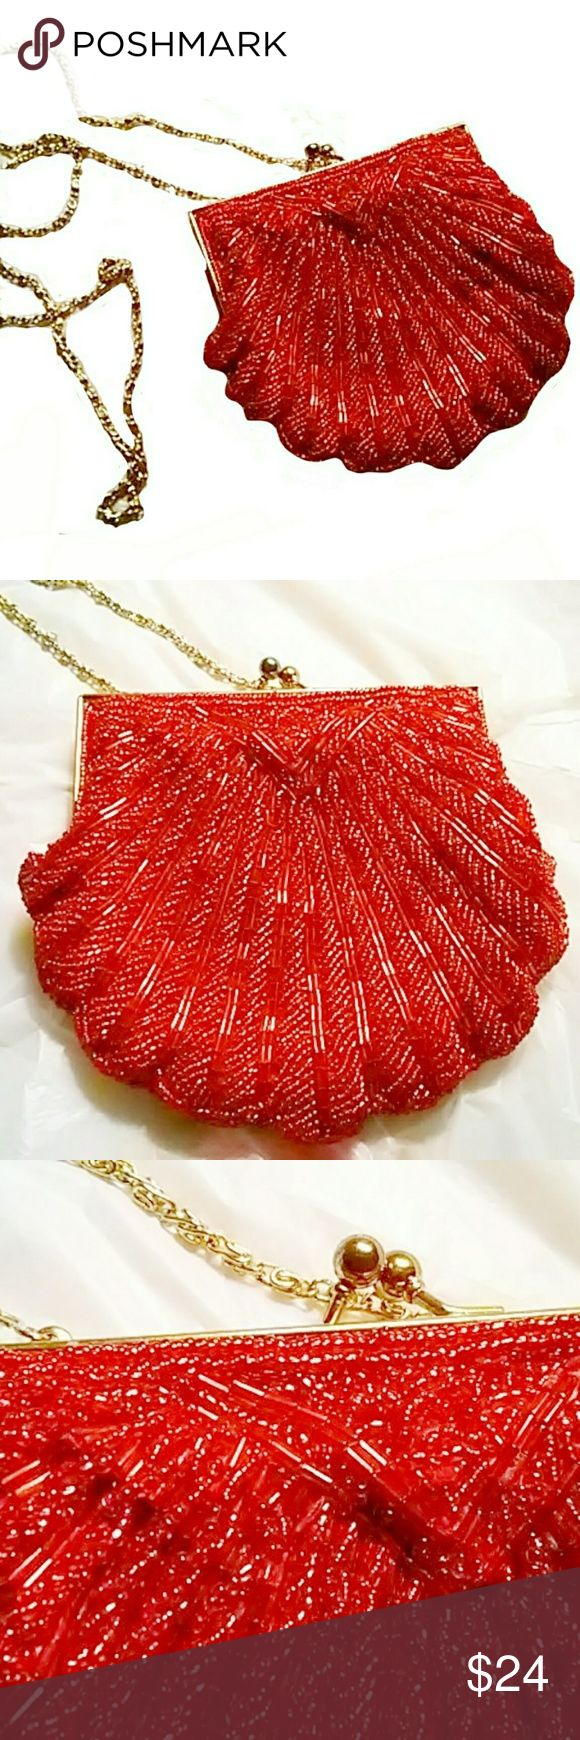 DAZZLING SPECIAL OCCASION HOT RED BAG This a a very cute evening/special occasion bag.  Gold tone accent and chain strap.  Strap can be completely hidden. Strap drop length approximately 22inches. Bag approximately 5.5 x 6 EUC ASK ALL QUESTIONS B4 YOU BUY! Bags Clutches & Wristlets